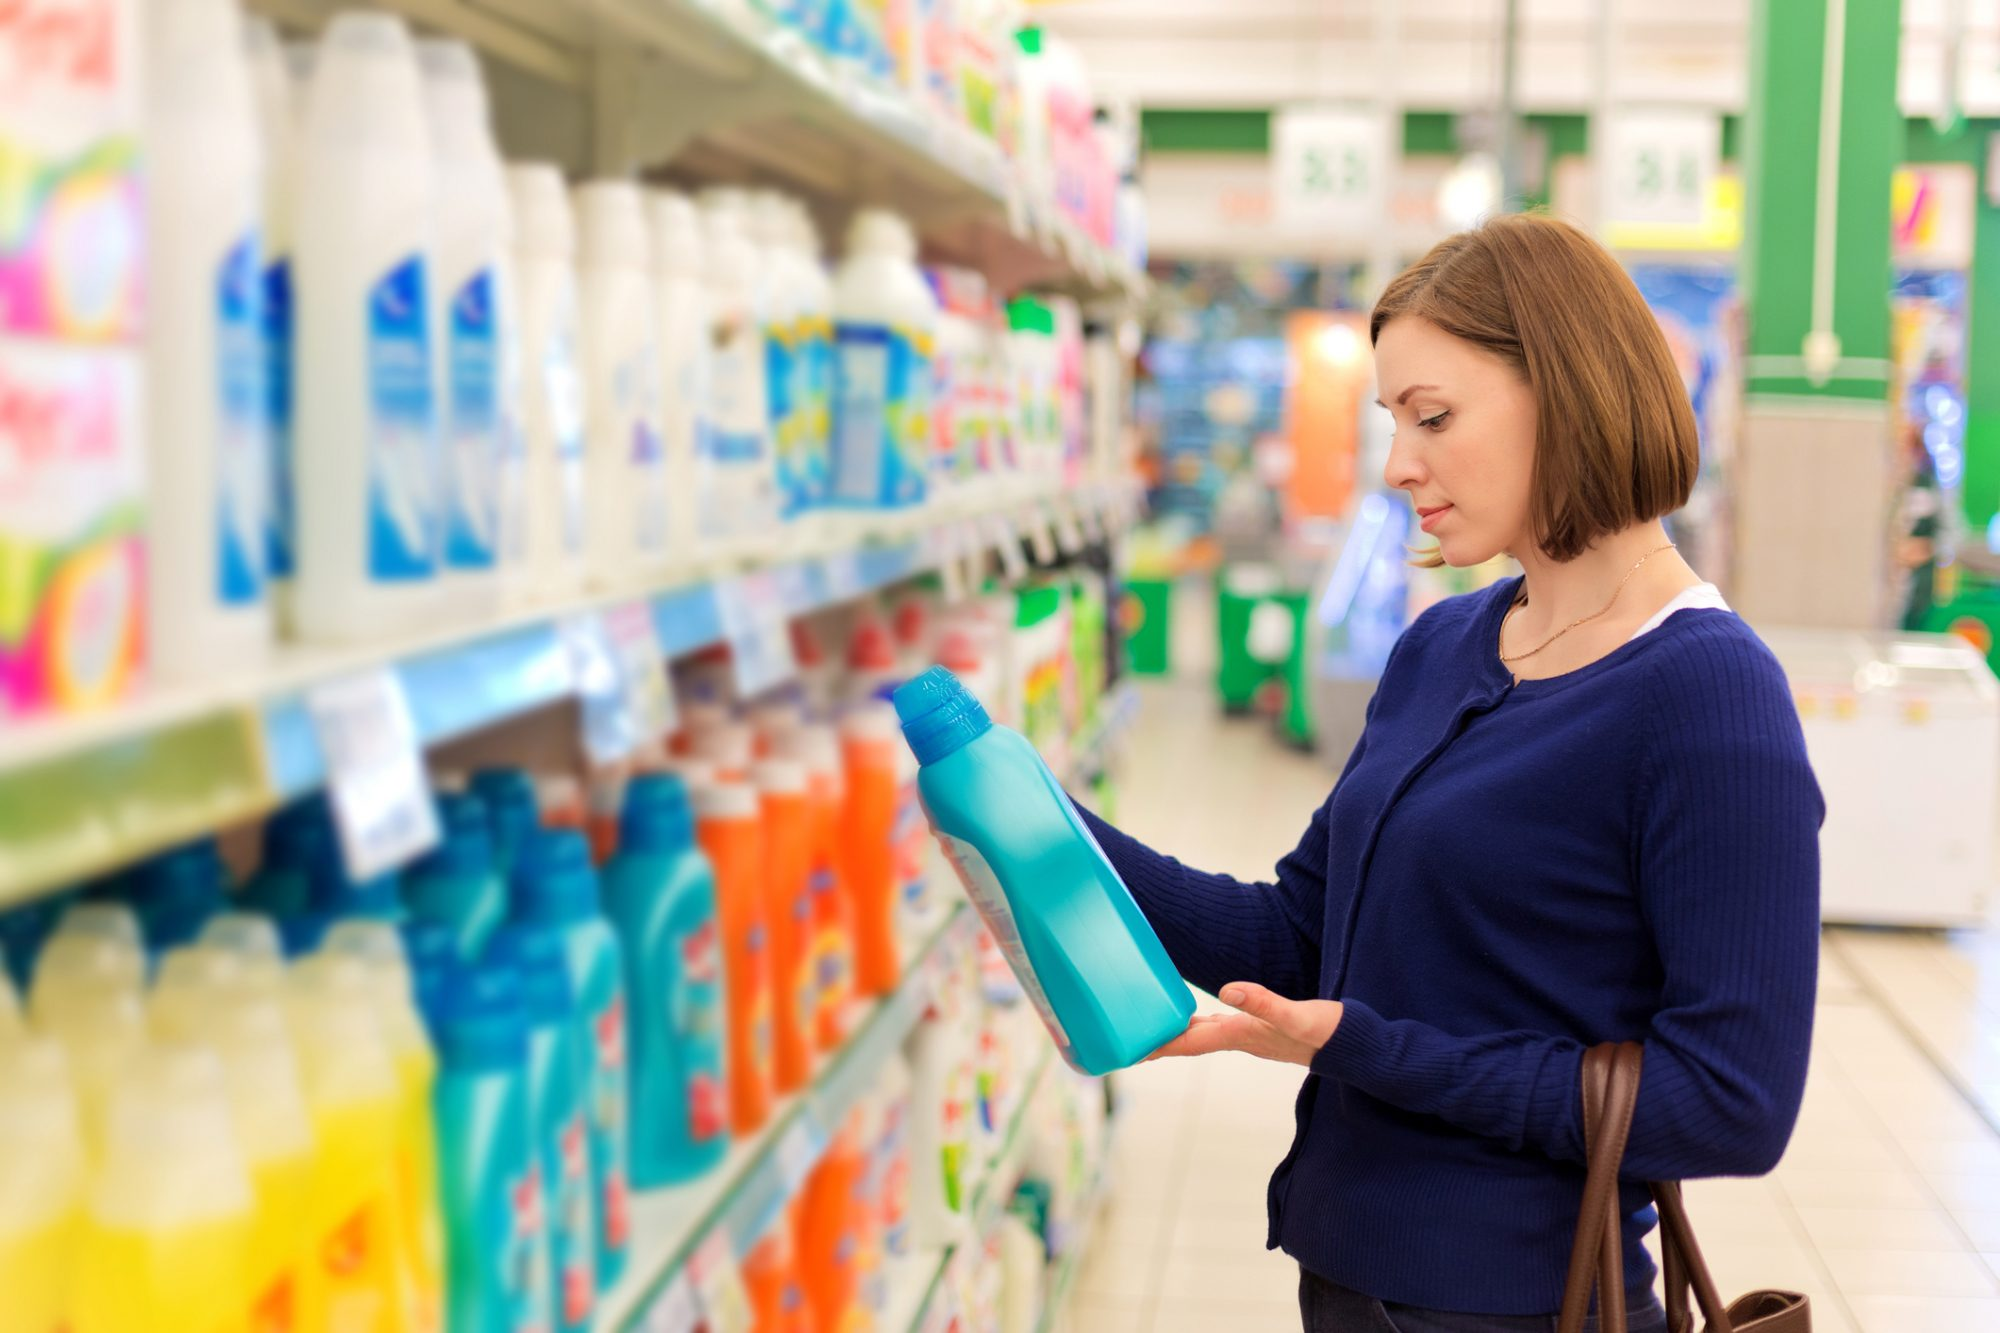 Woman Selecting Detergent